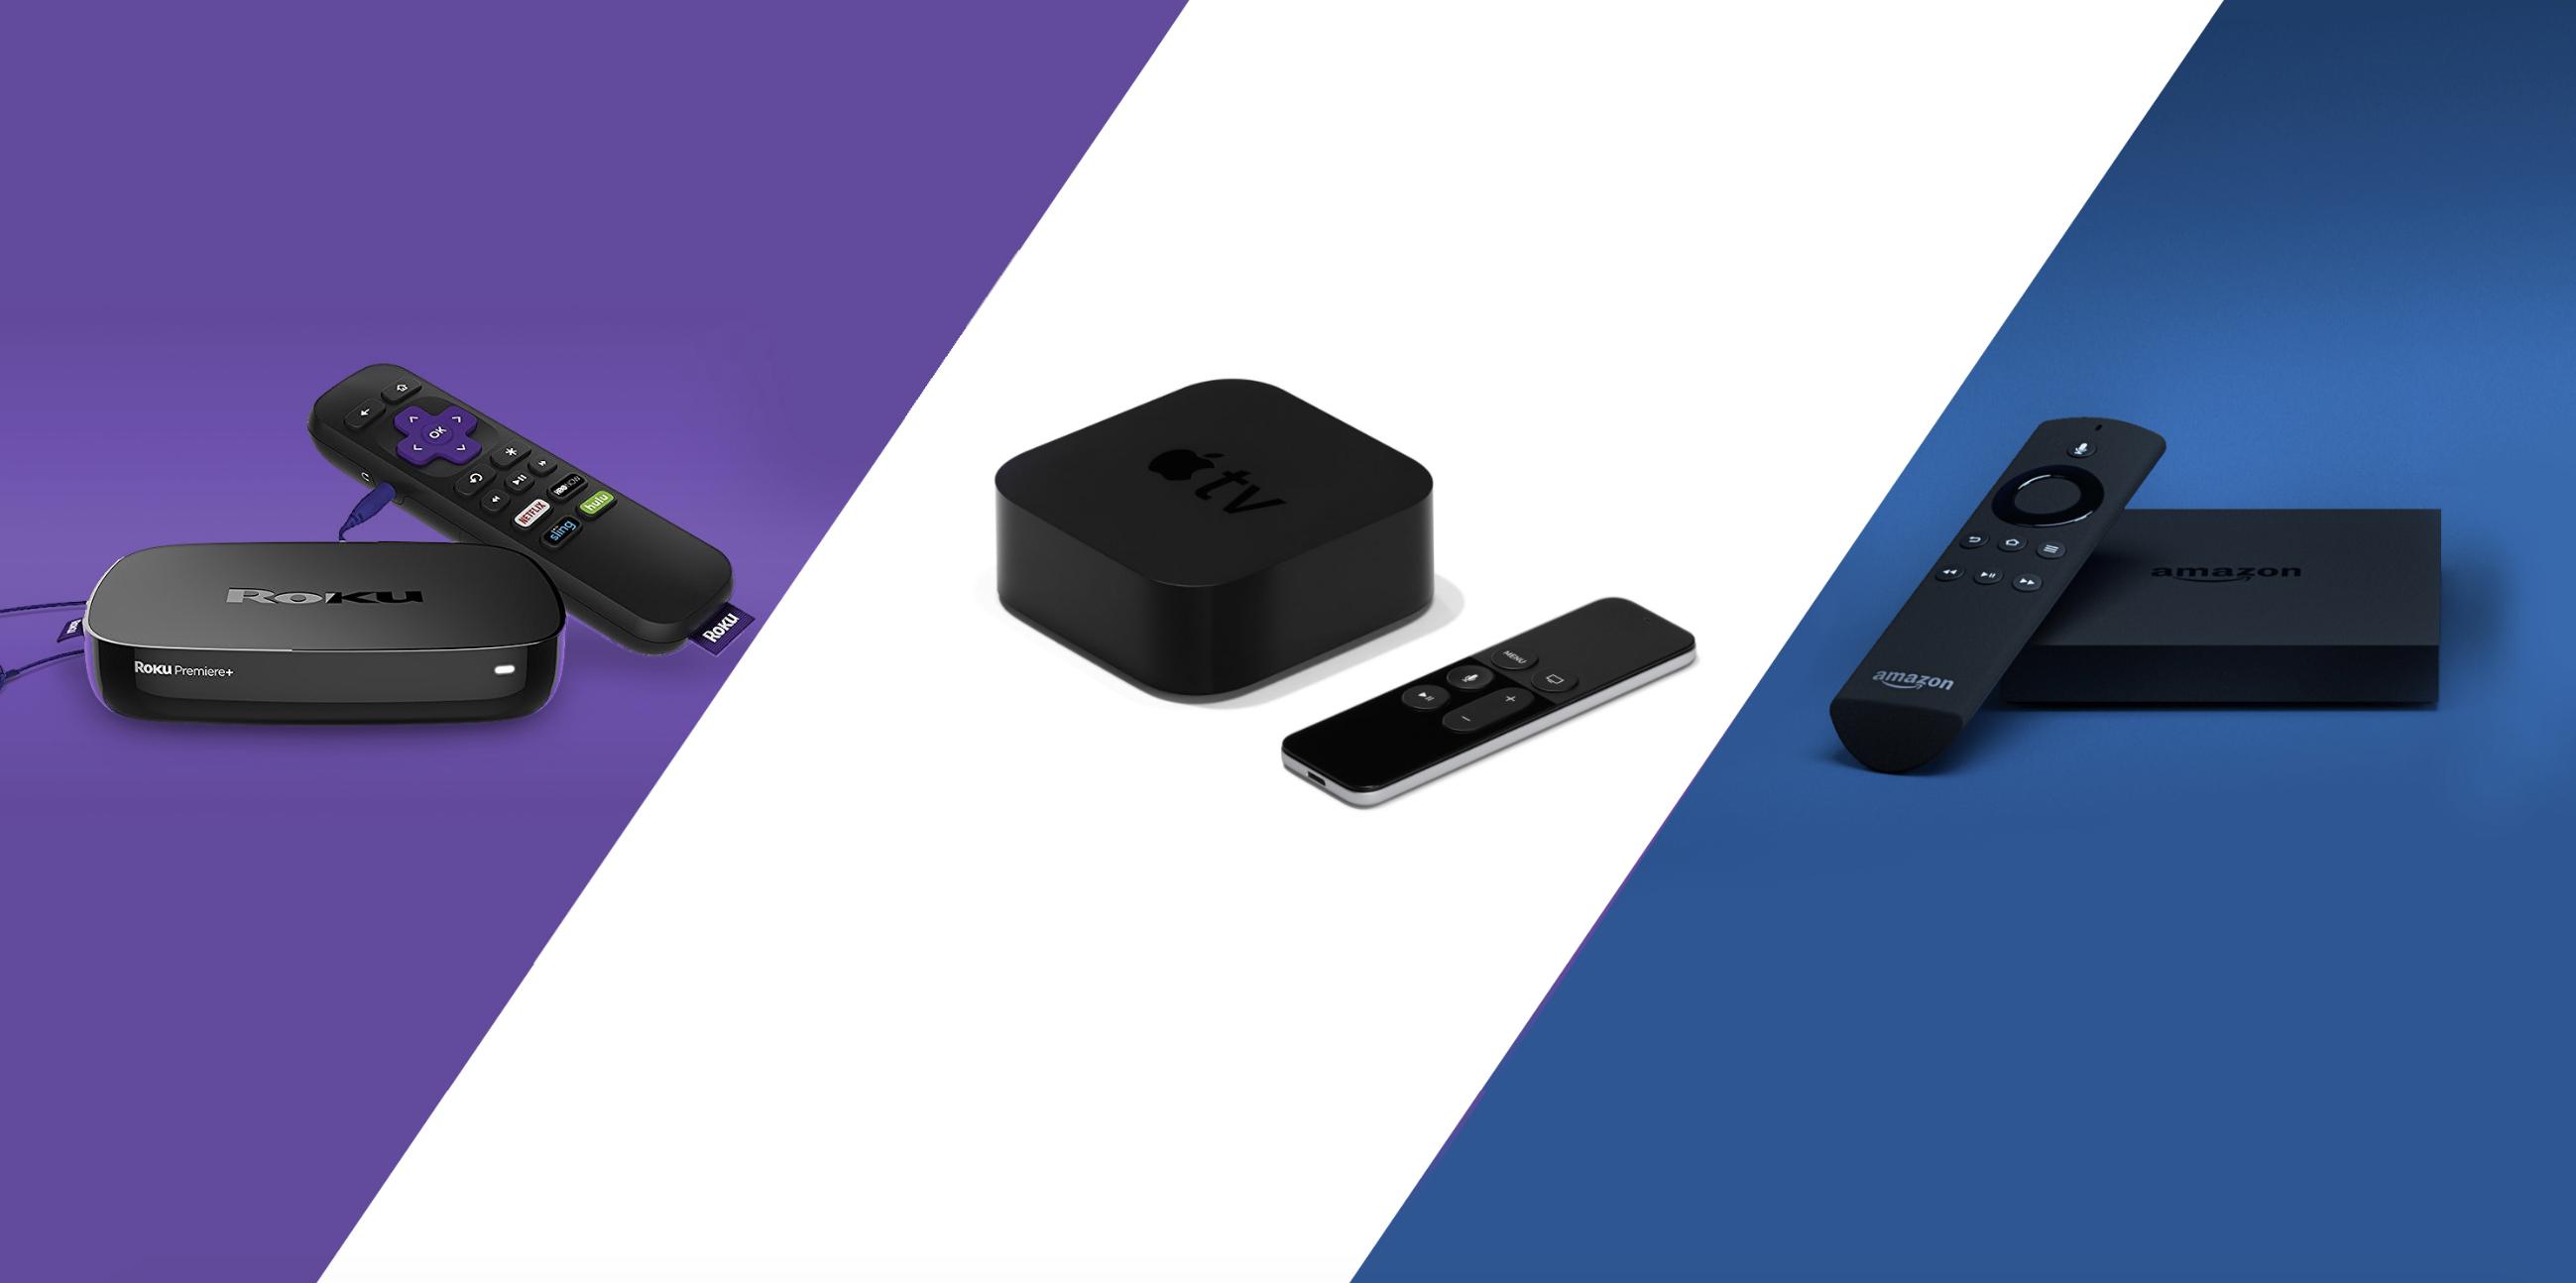 Roku vs Apple TV vs Amazon Fire TV — which is the best?